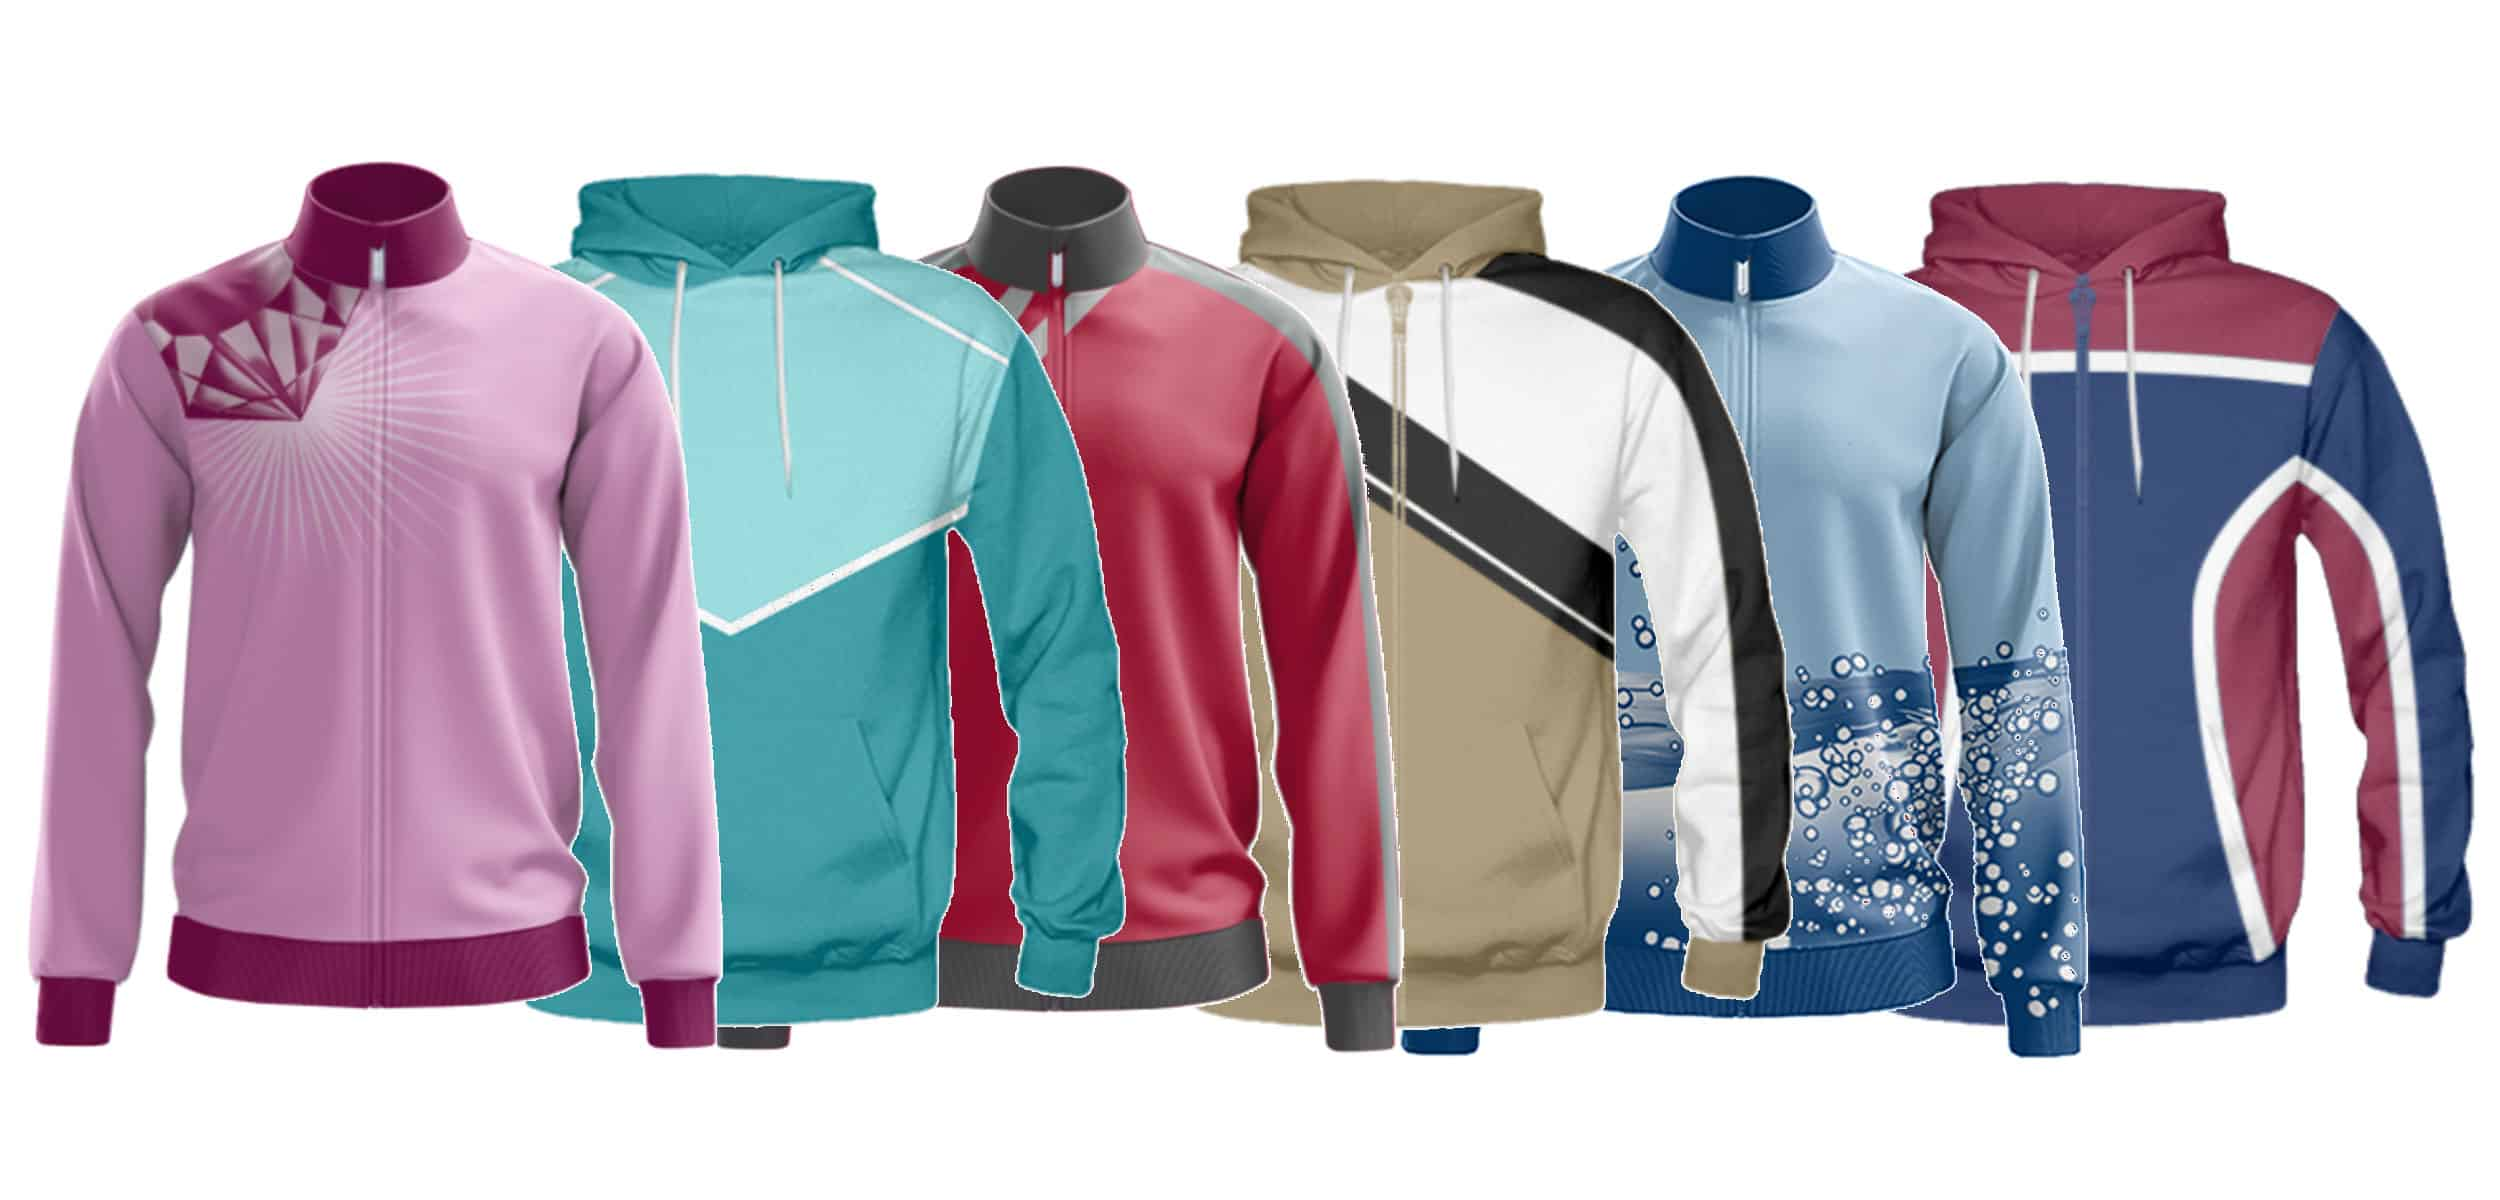 20% Off All Printed Custom Hoodies & Jackets - Custom Made Uniforms